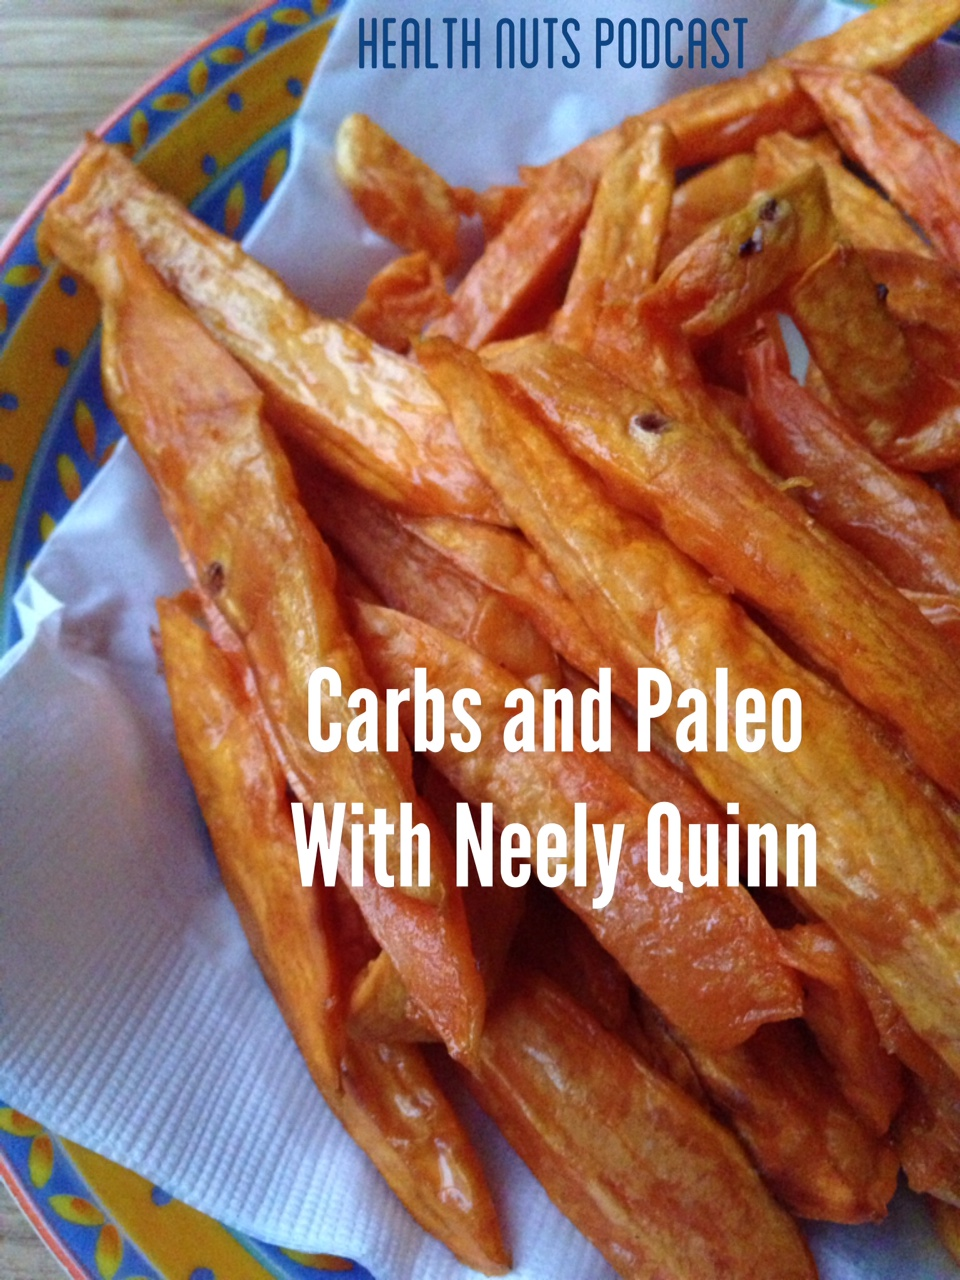 Carbs and Paleo with Neely Quinn